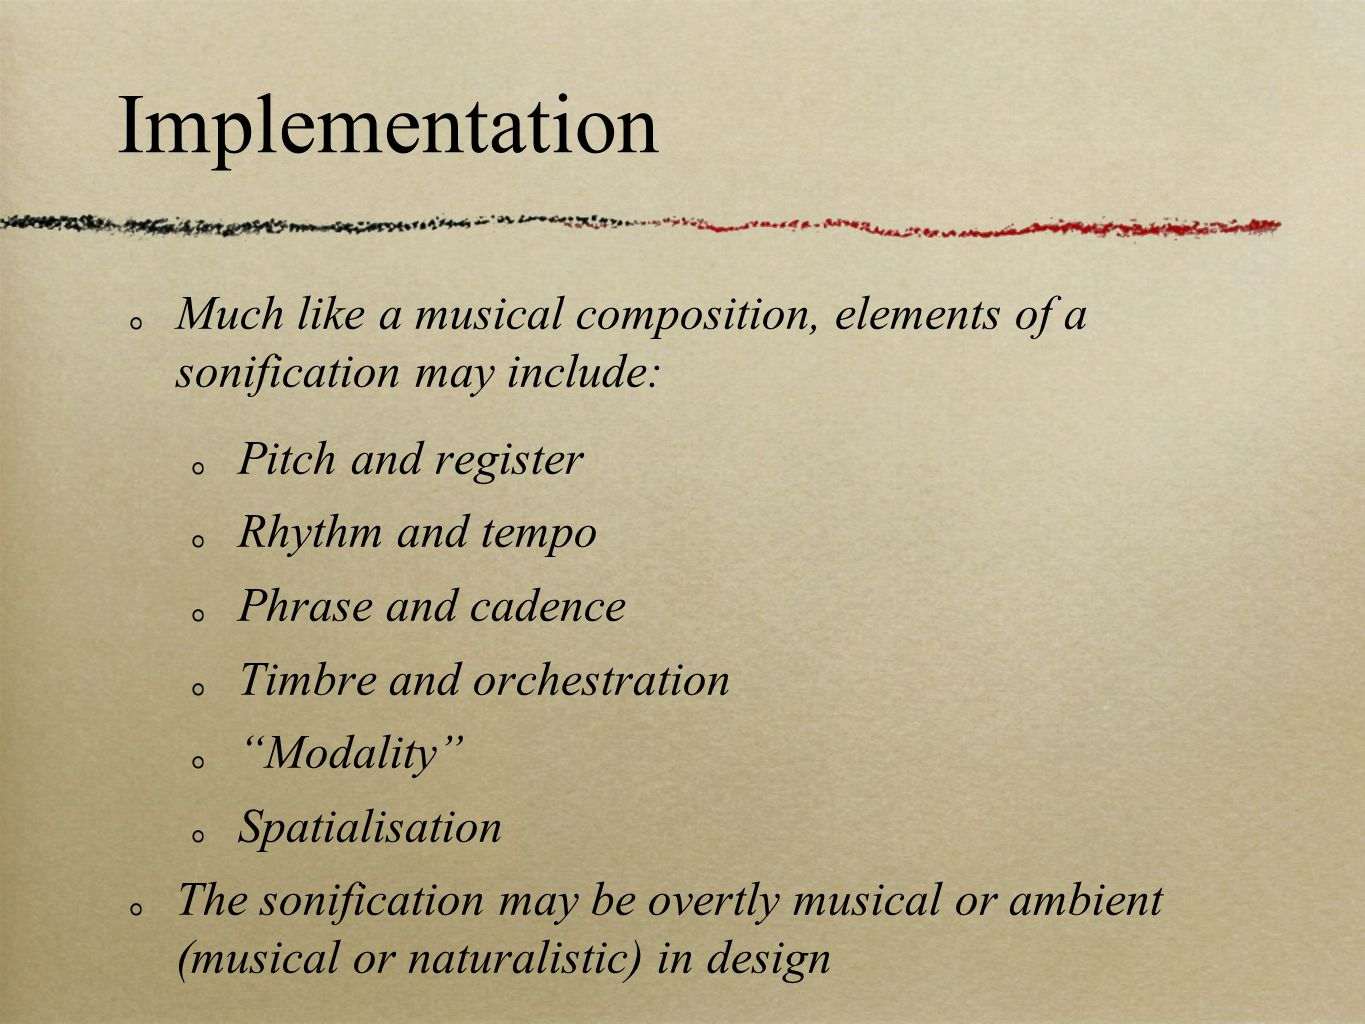 Much like a musical composition, elements of a sonification may include: Pitch and register Rhythm and tempo Phrase and cadence Timbre and orchestrati